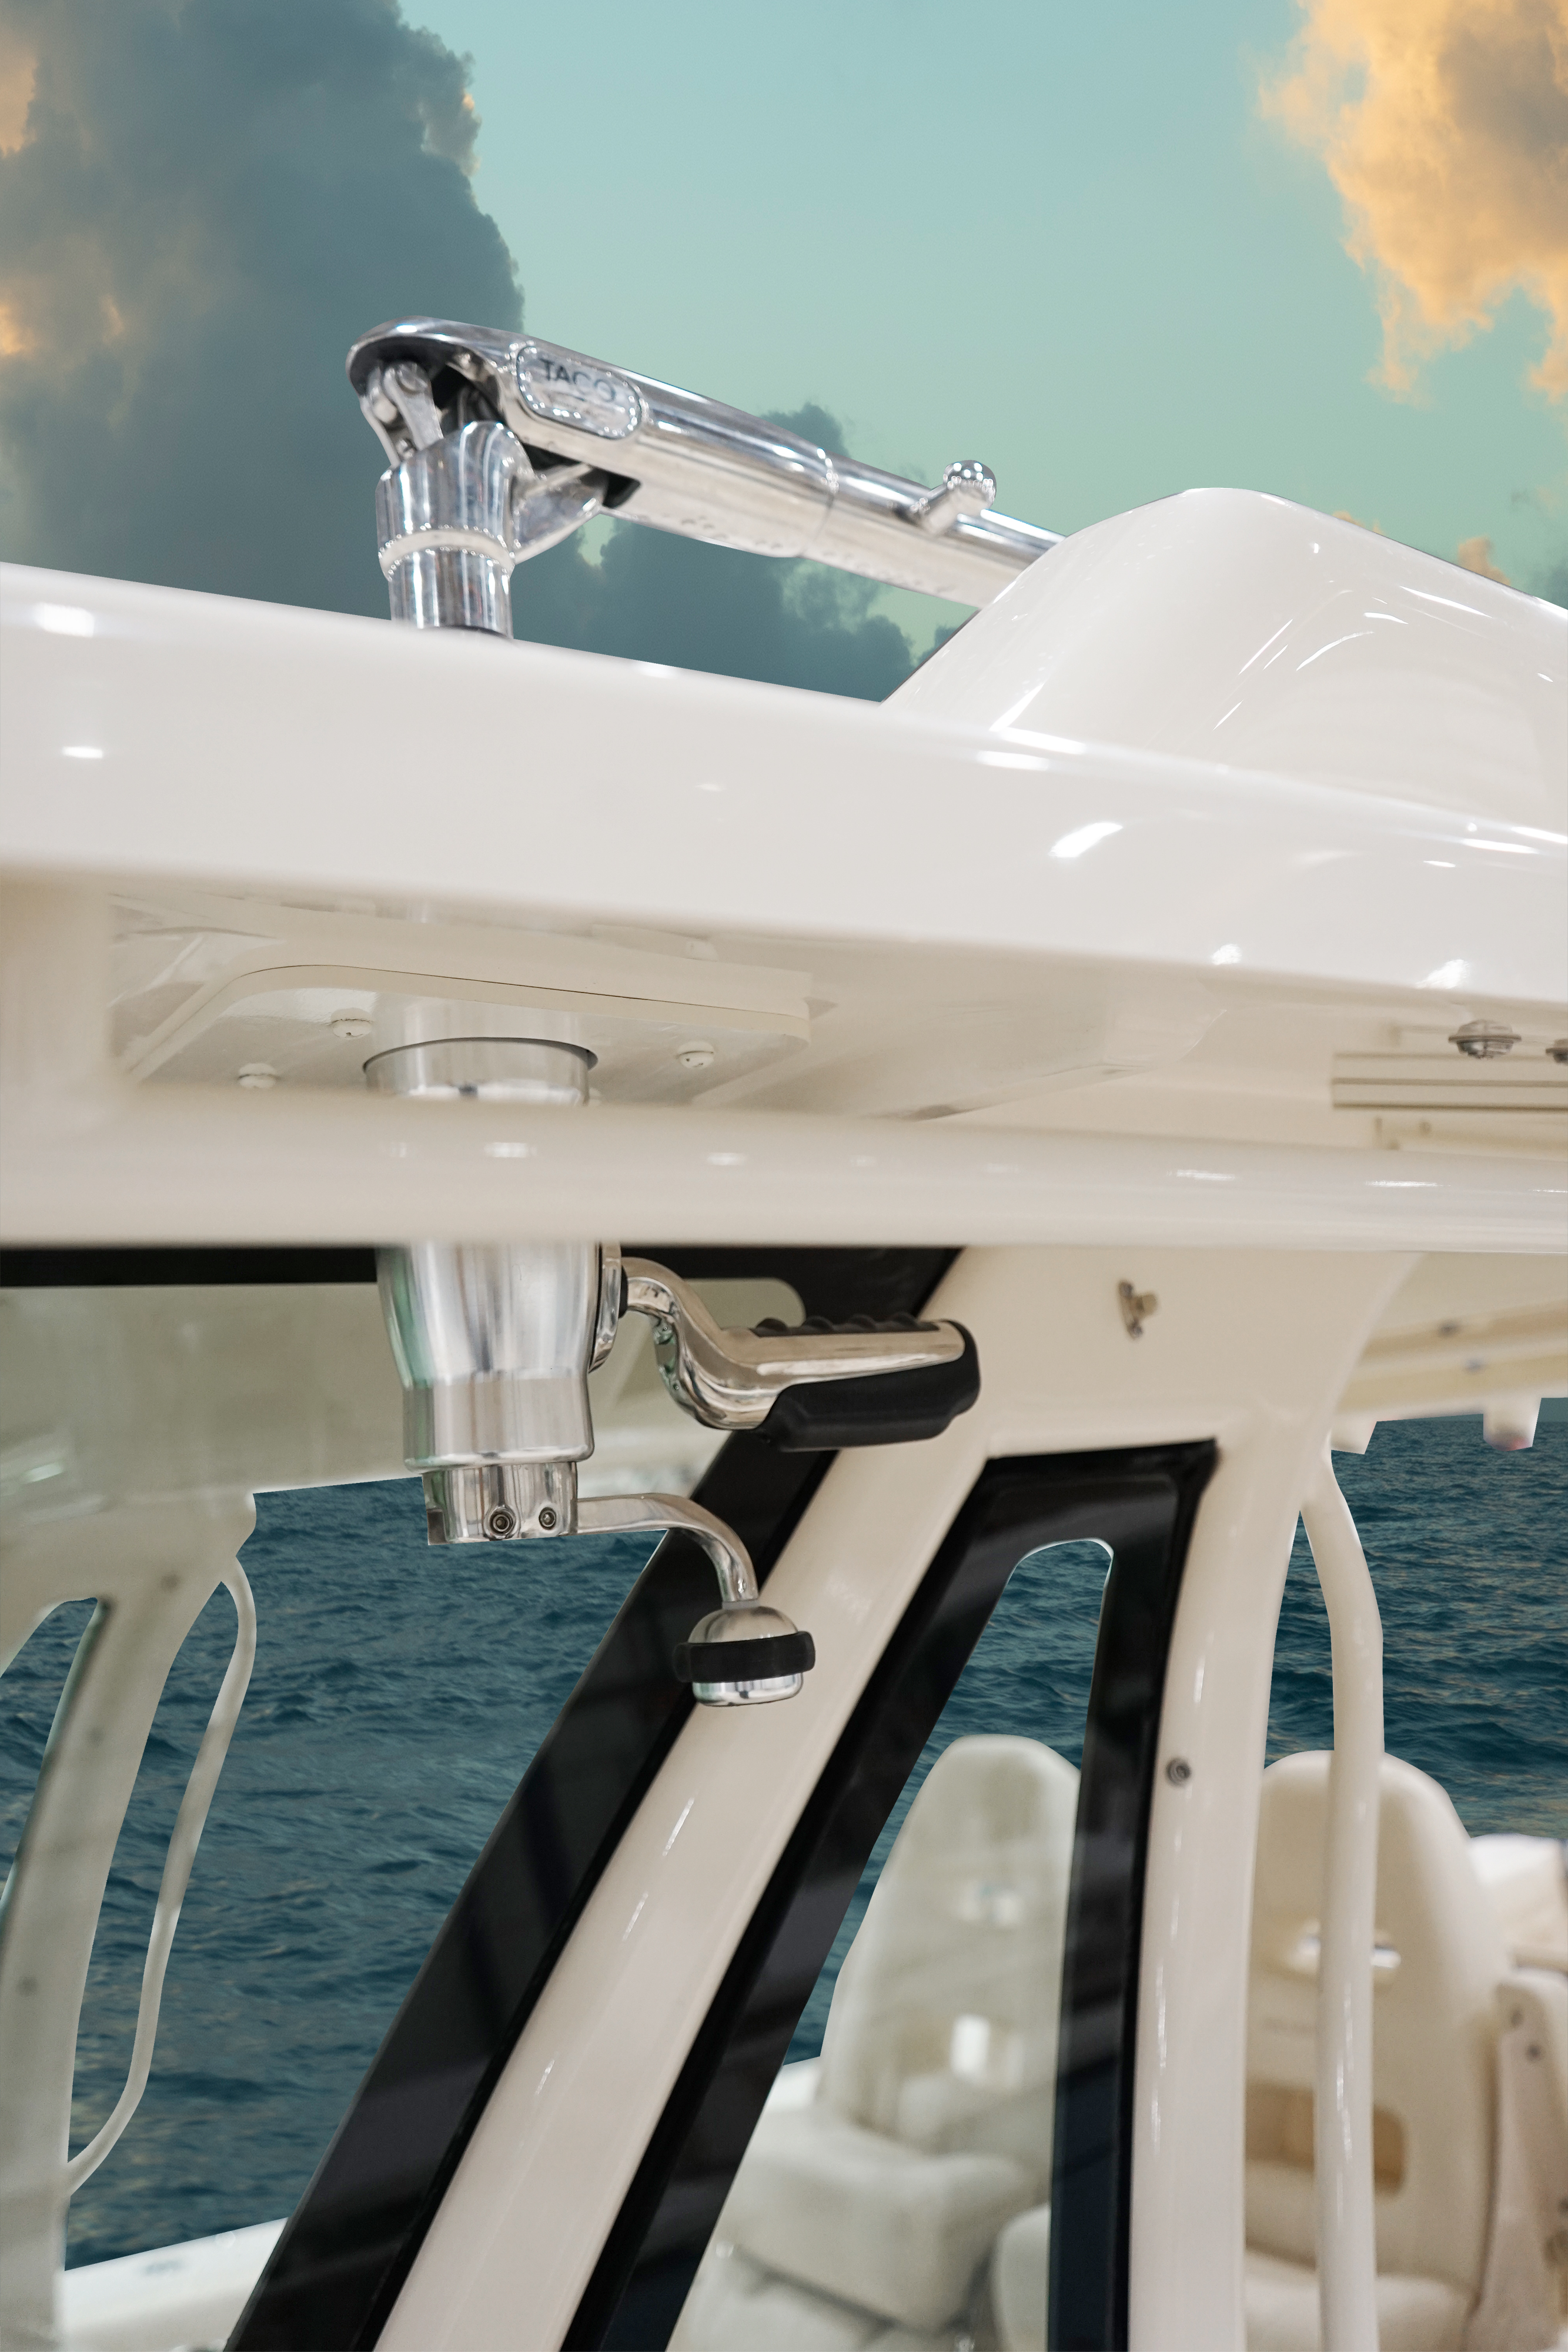 Grady-White Canyon 376, 37-foot center console boat radial outriggers